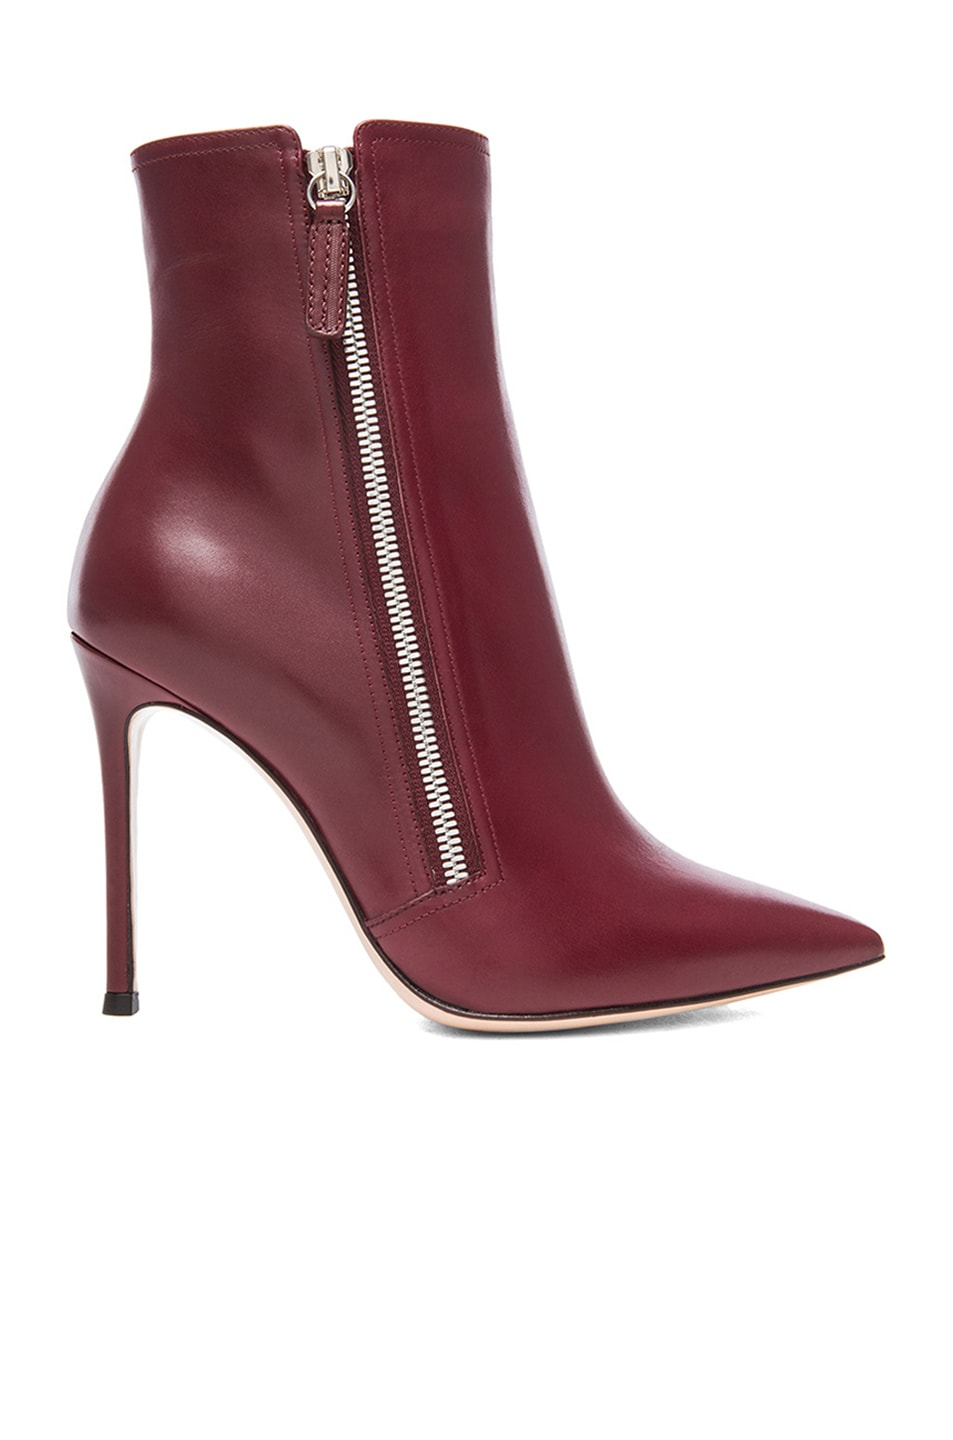 Gianvito Rossi Burgundy Patent L... shop offer cheap price AsGVBslbah